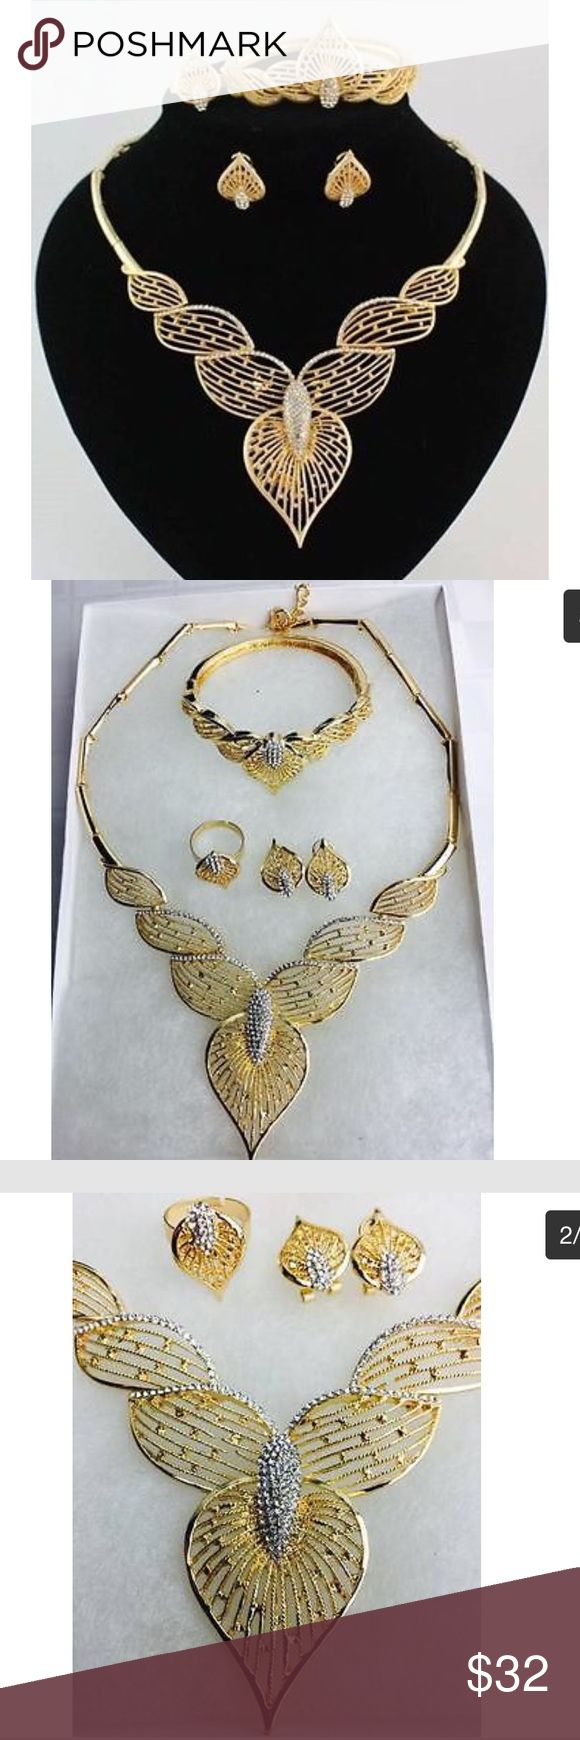 Leaf Design Gold Plated Rhinestone Jewelry Set Jewelry Sets- Include Necklace, Earings, Bangle and Adjustable Ring.  Main stone: Crystal, Rhinestone.  Style: Dubai African gold jewelry set  Main Material: Alloy  Gold plating color: 18K Gold Plated.   Its hypoallergenic and never fade. Ideal for gifts, wedding, birthday's and other parties. 2016 Trend! Ship with box. Jewelry Necklaces